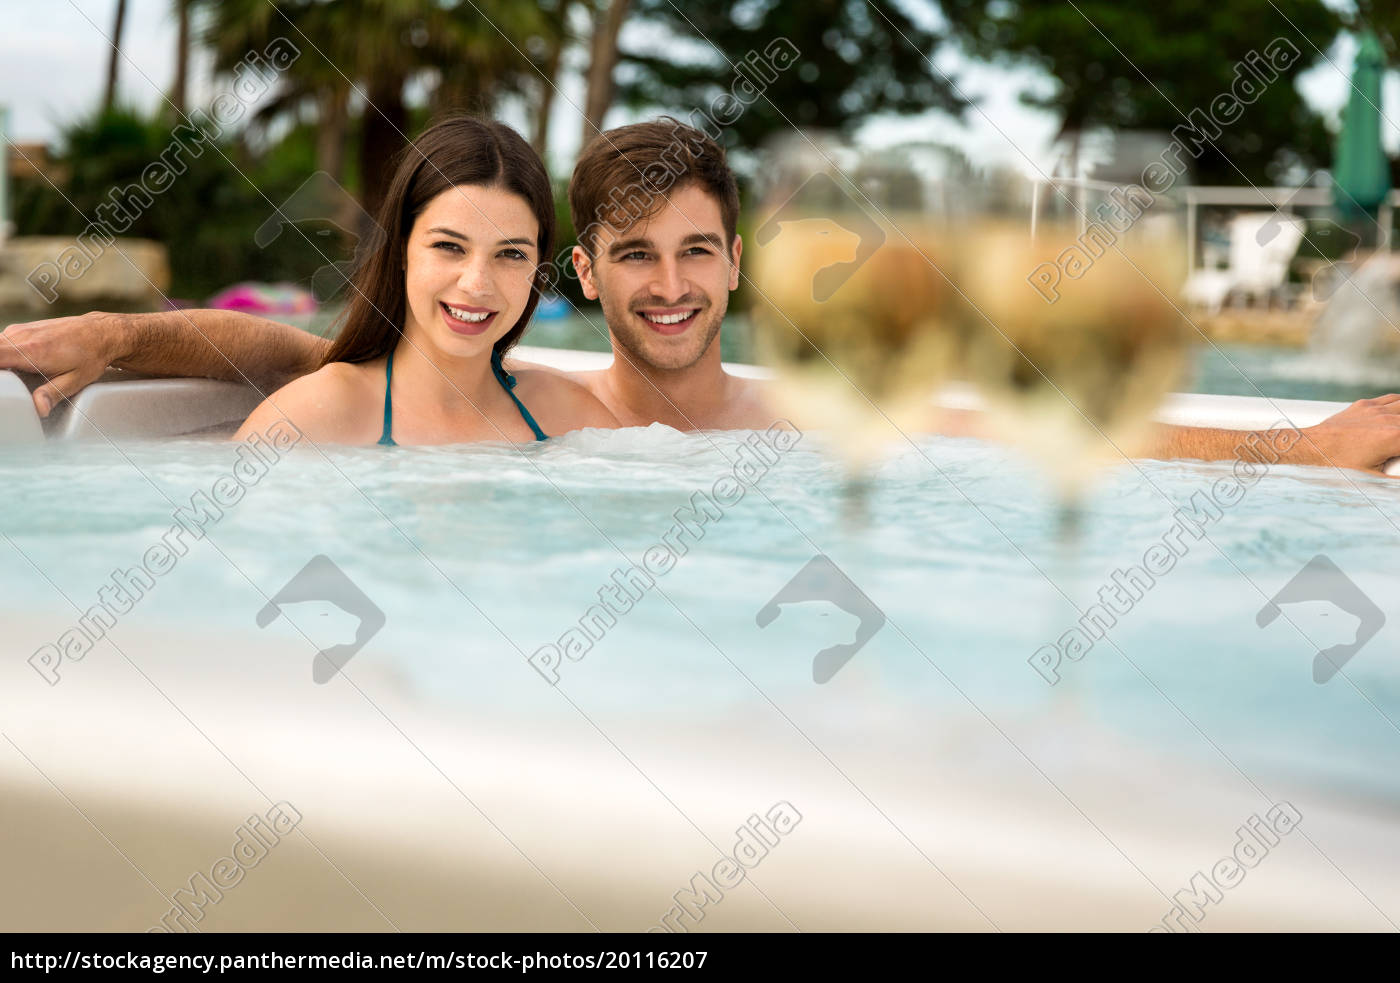 young, couple, in, a, jacuzzi - 20116207